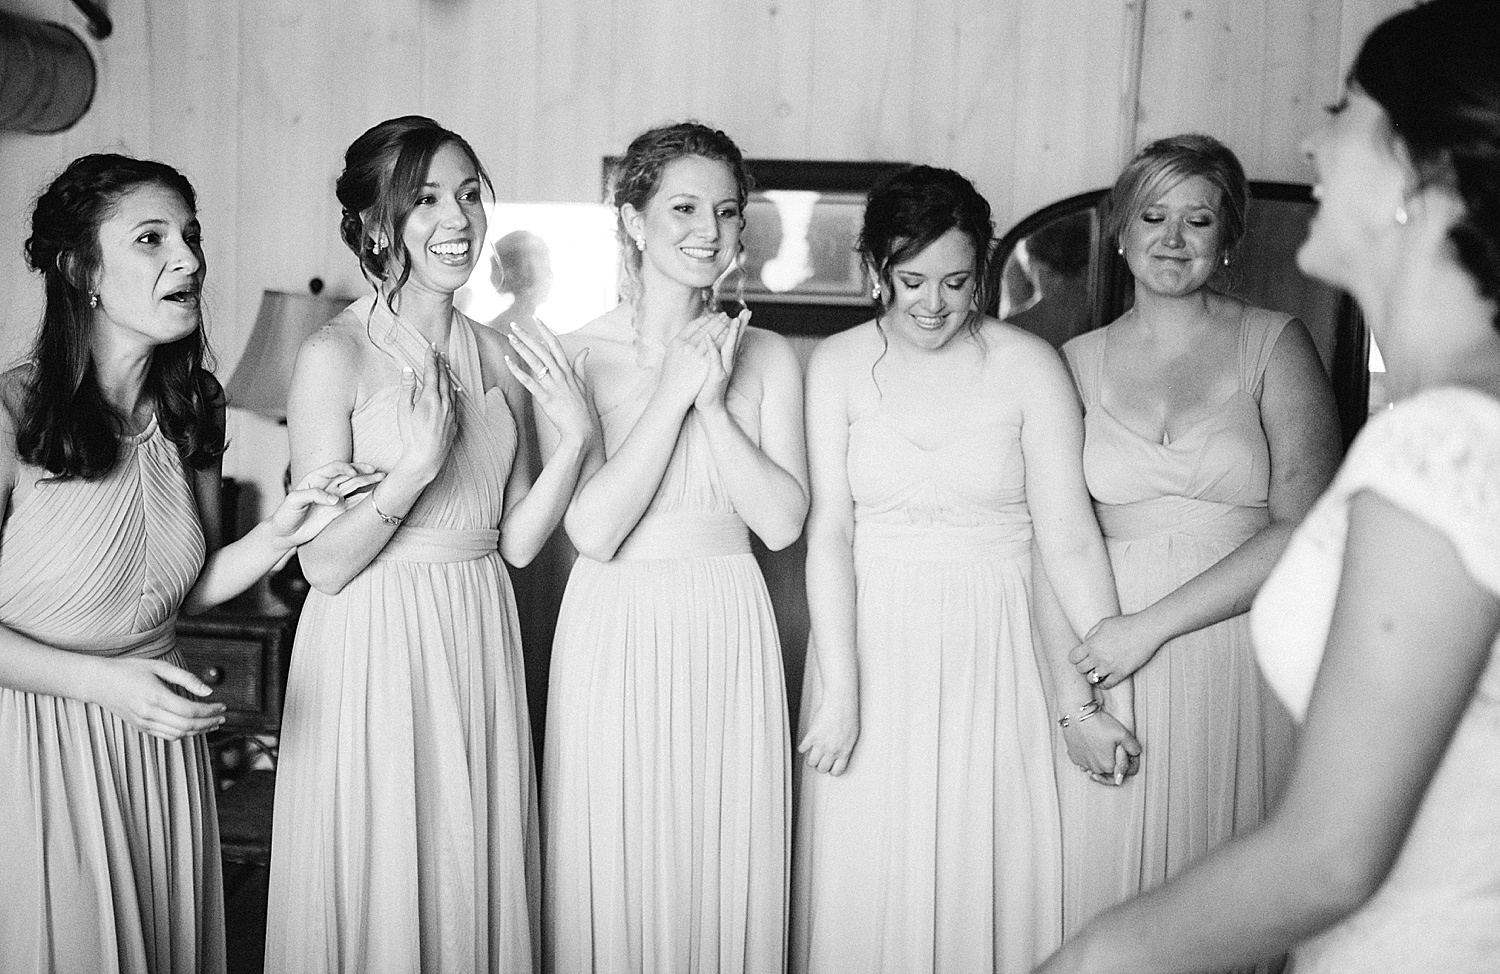 emilyaustin_rosebank_winery_newhope_farm_wedding_image021.jpg